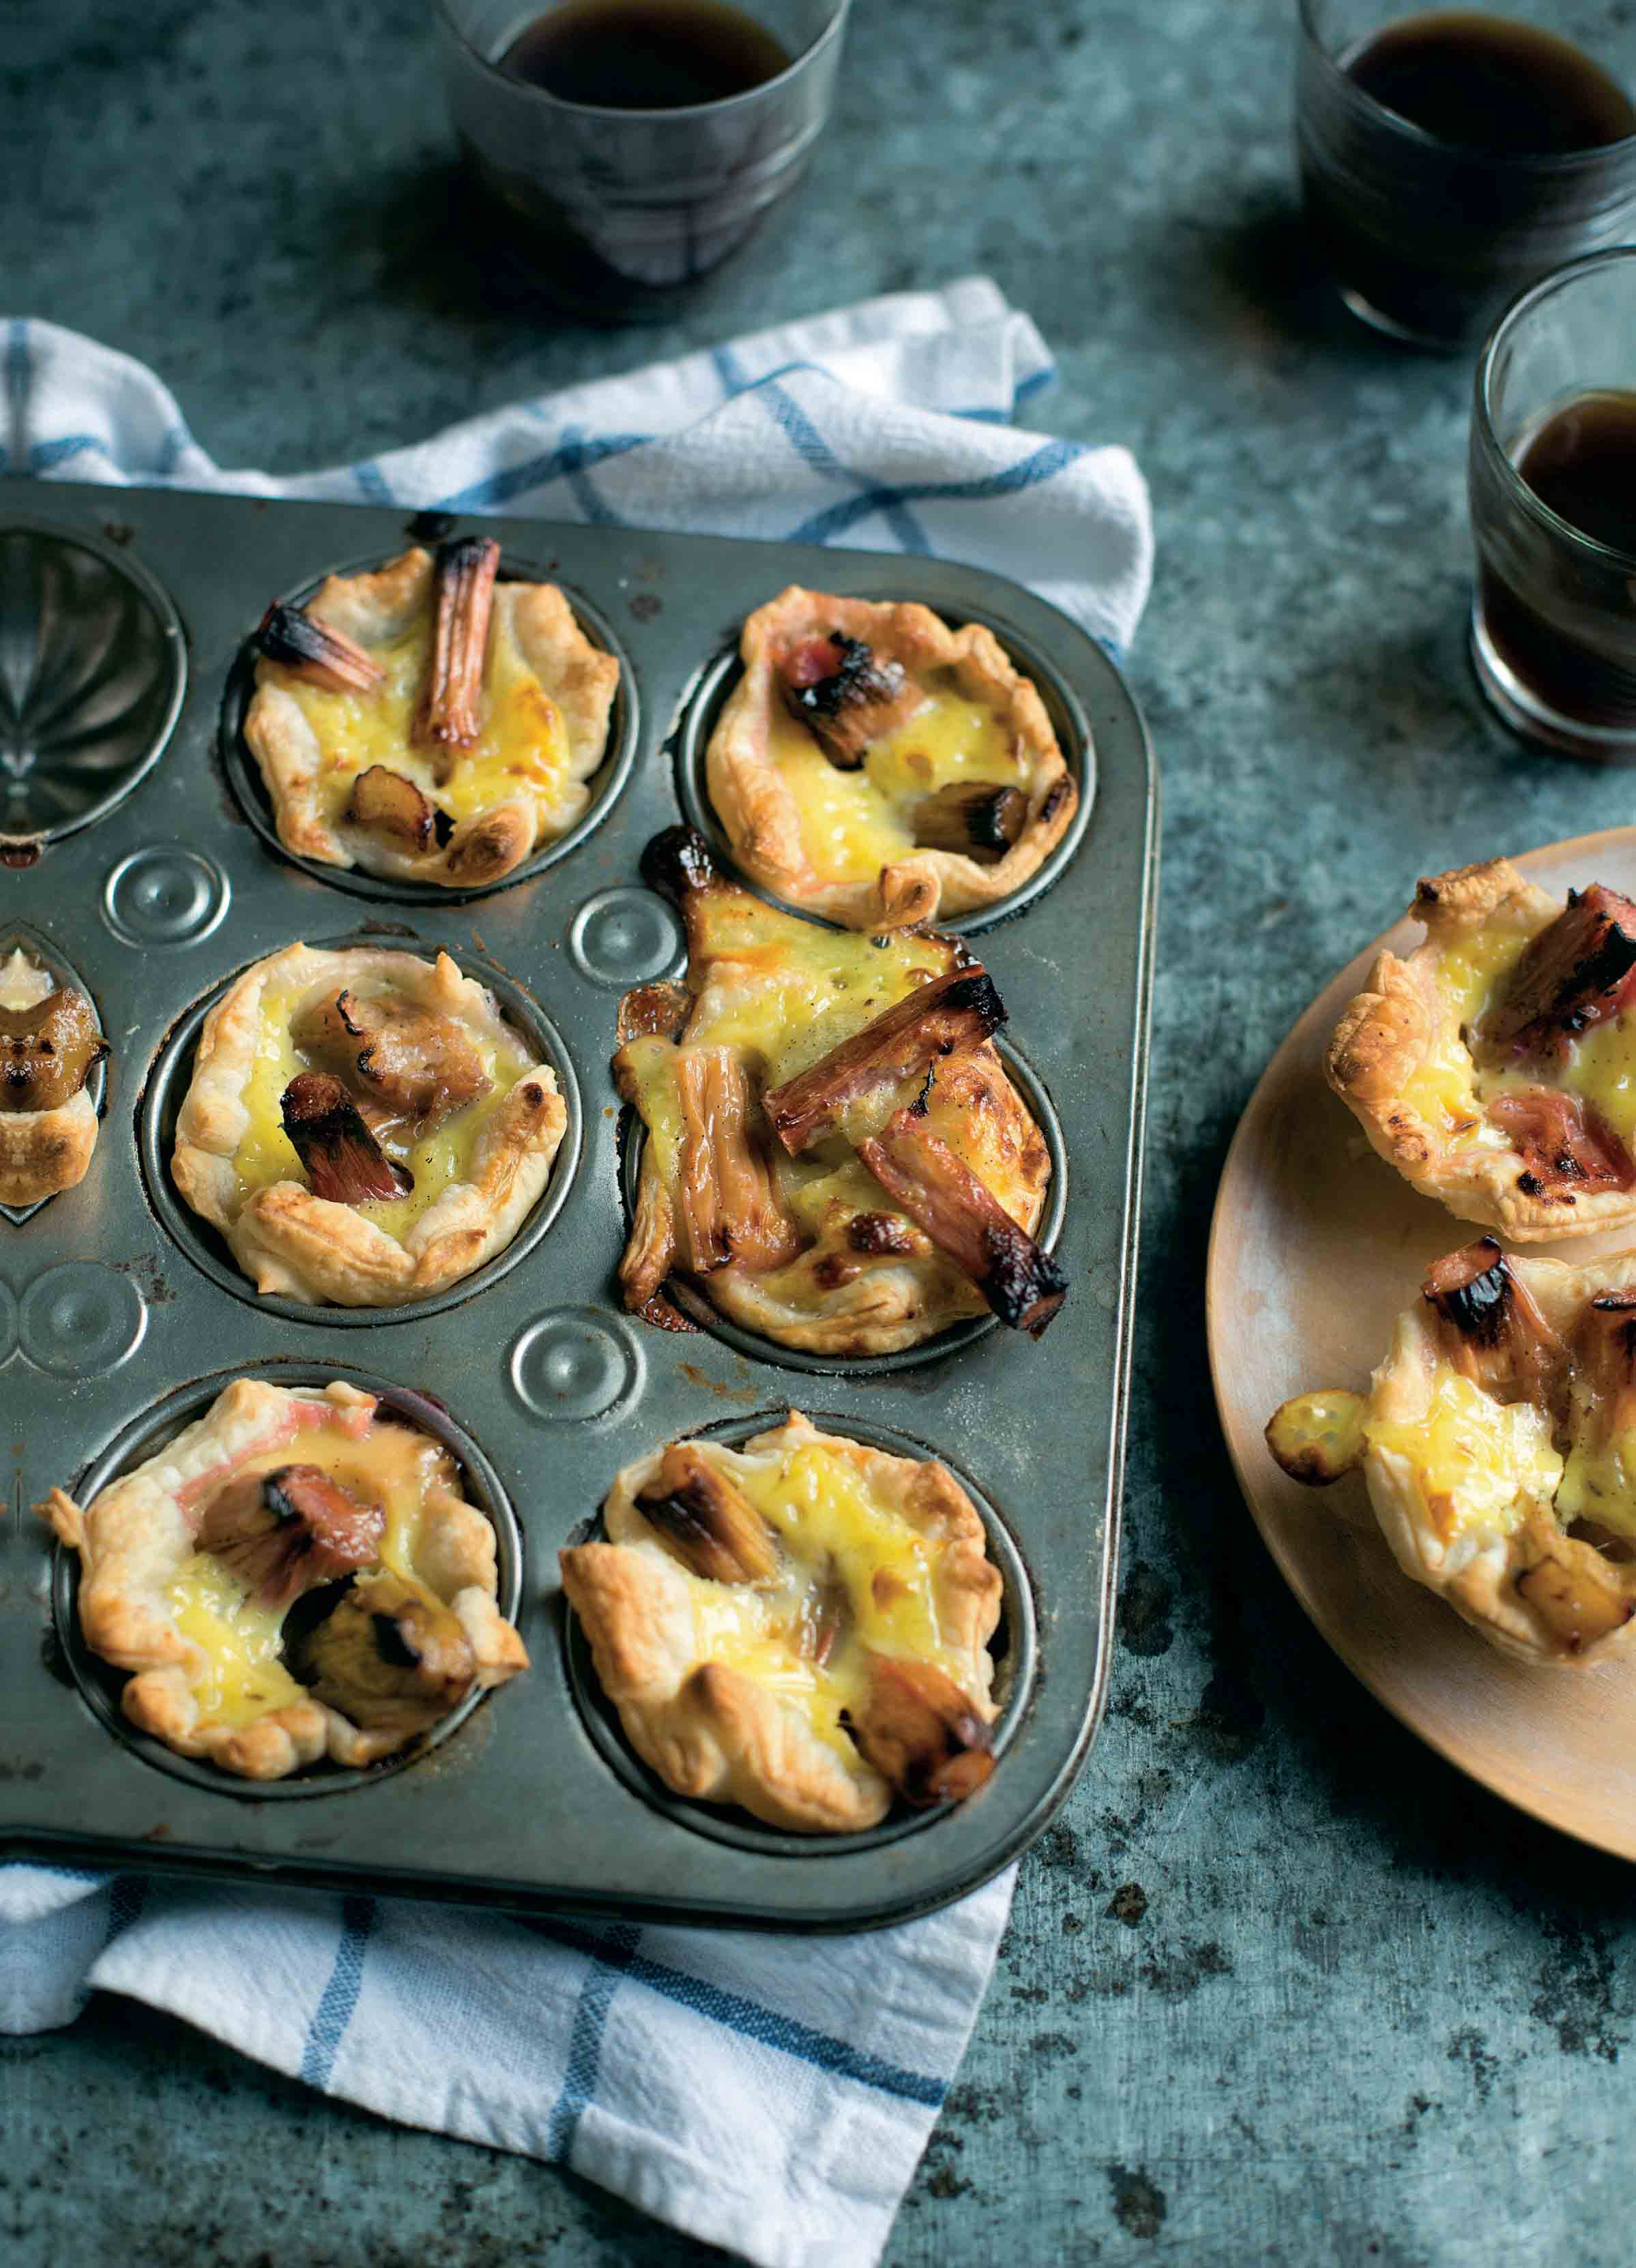 Rhubarb and custard Portuguese tarts